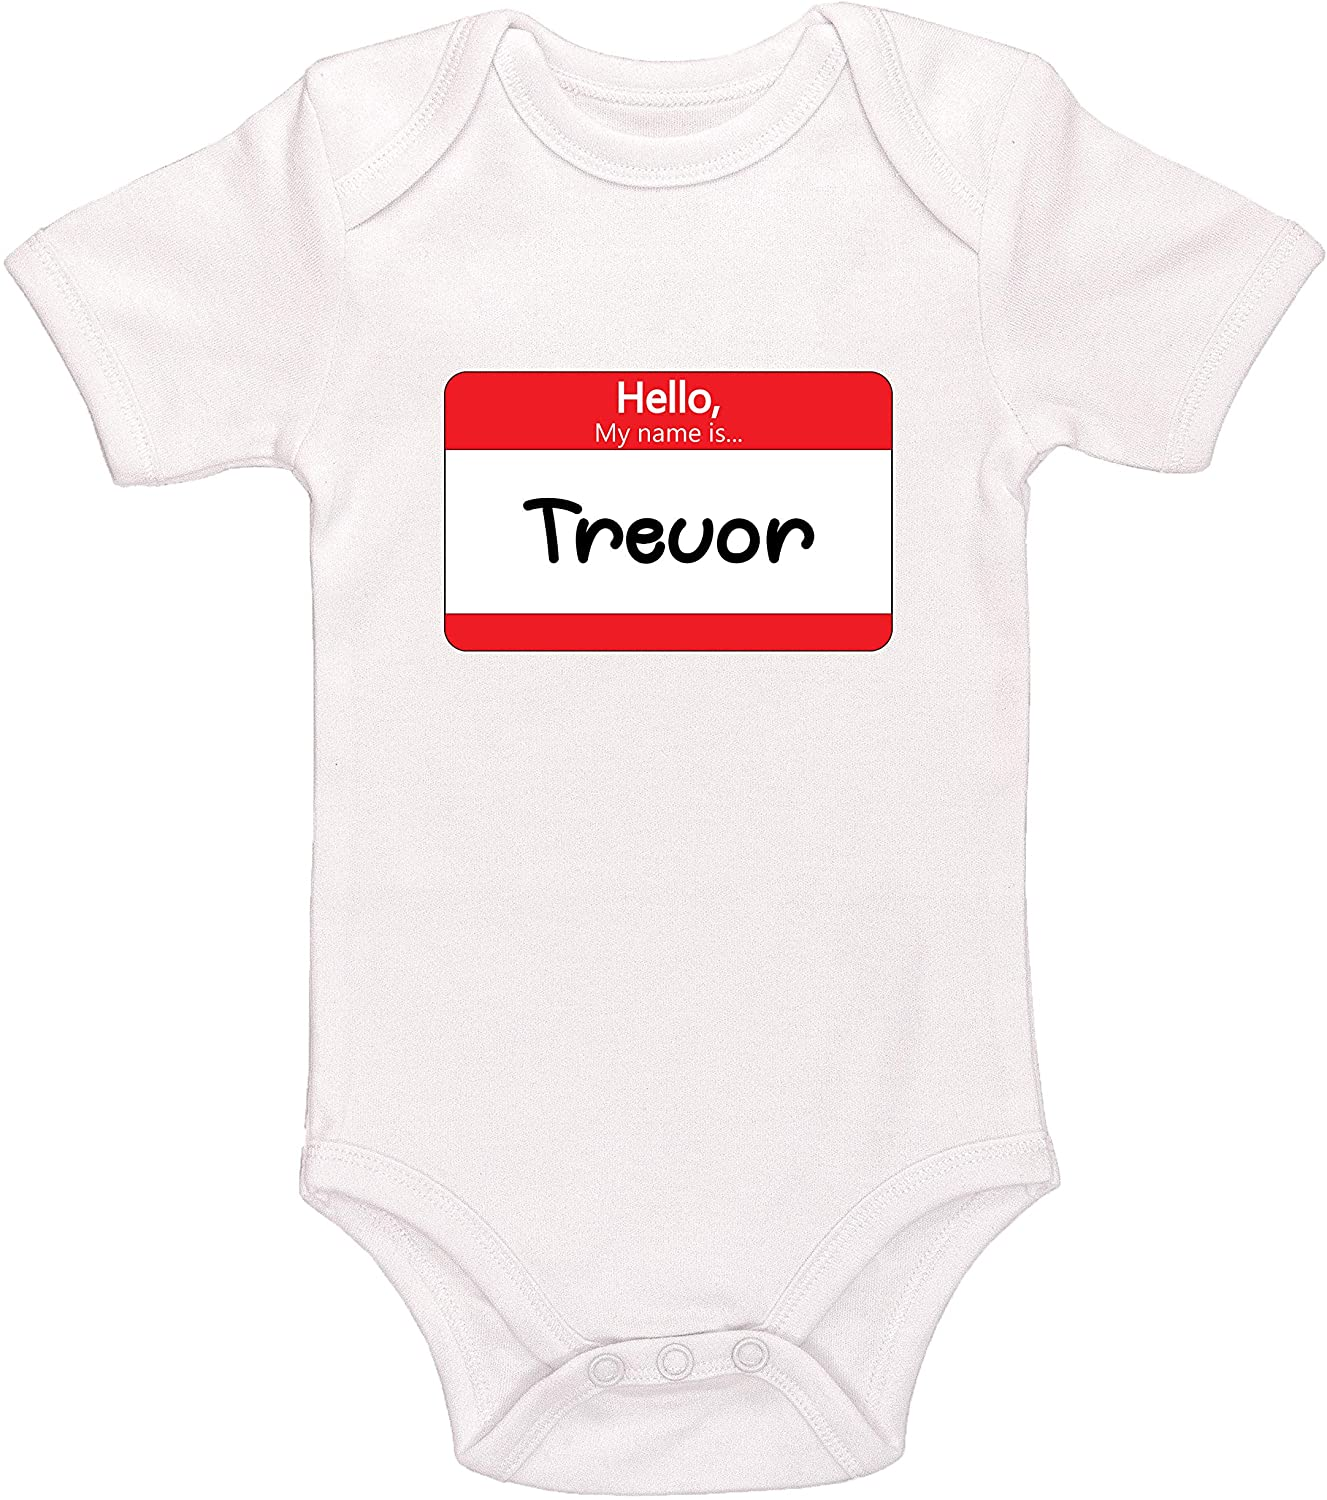 Kinacle Hello My Name is Trevor Personalized Baby Bodysuit